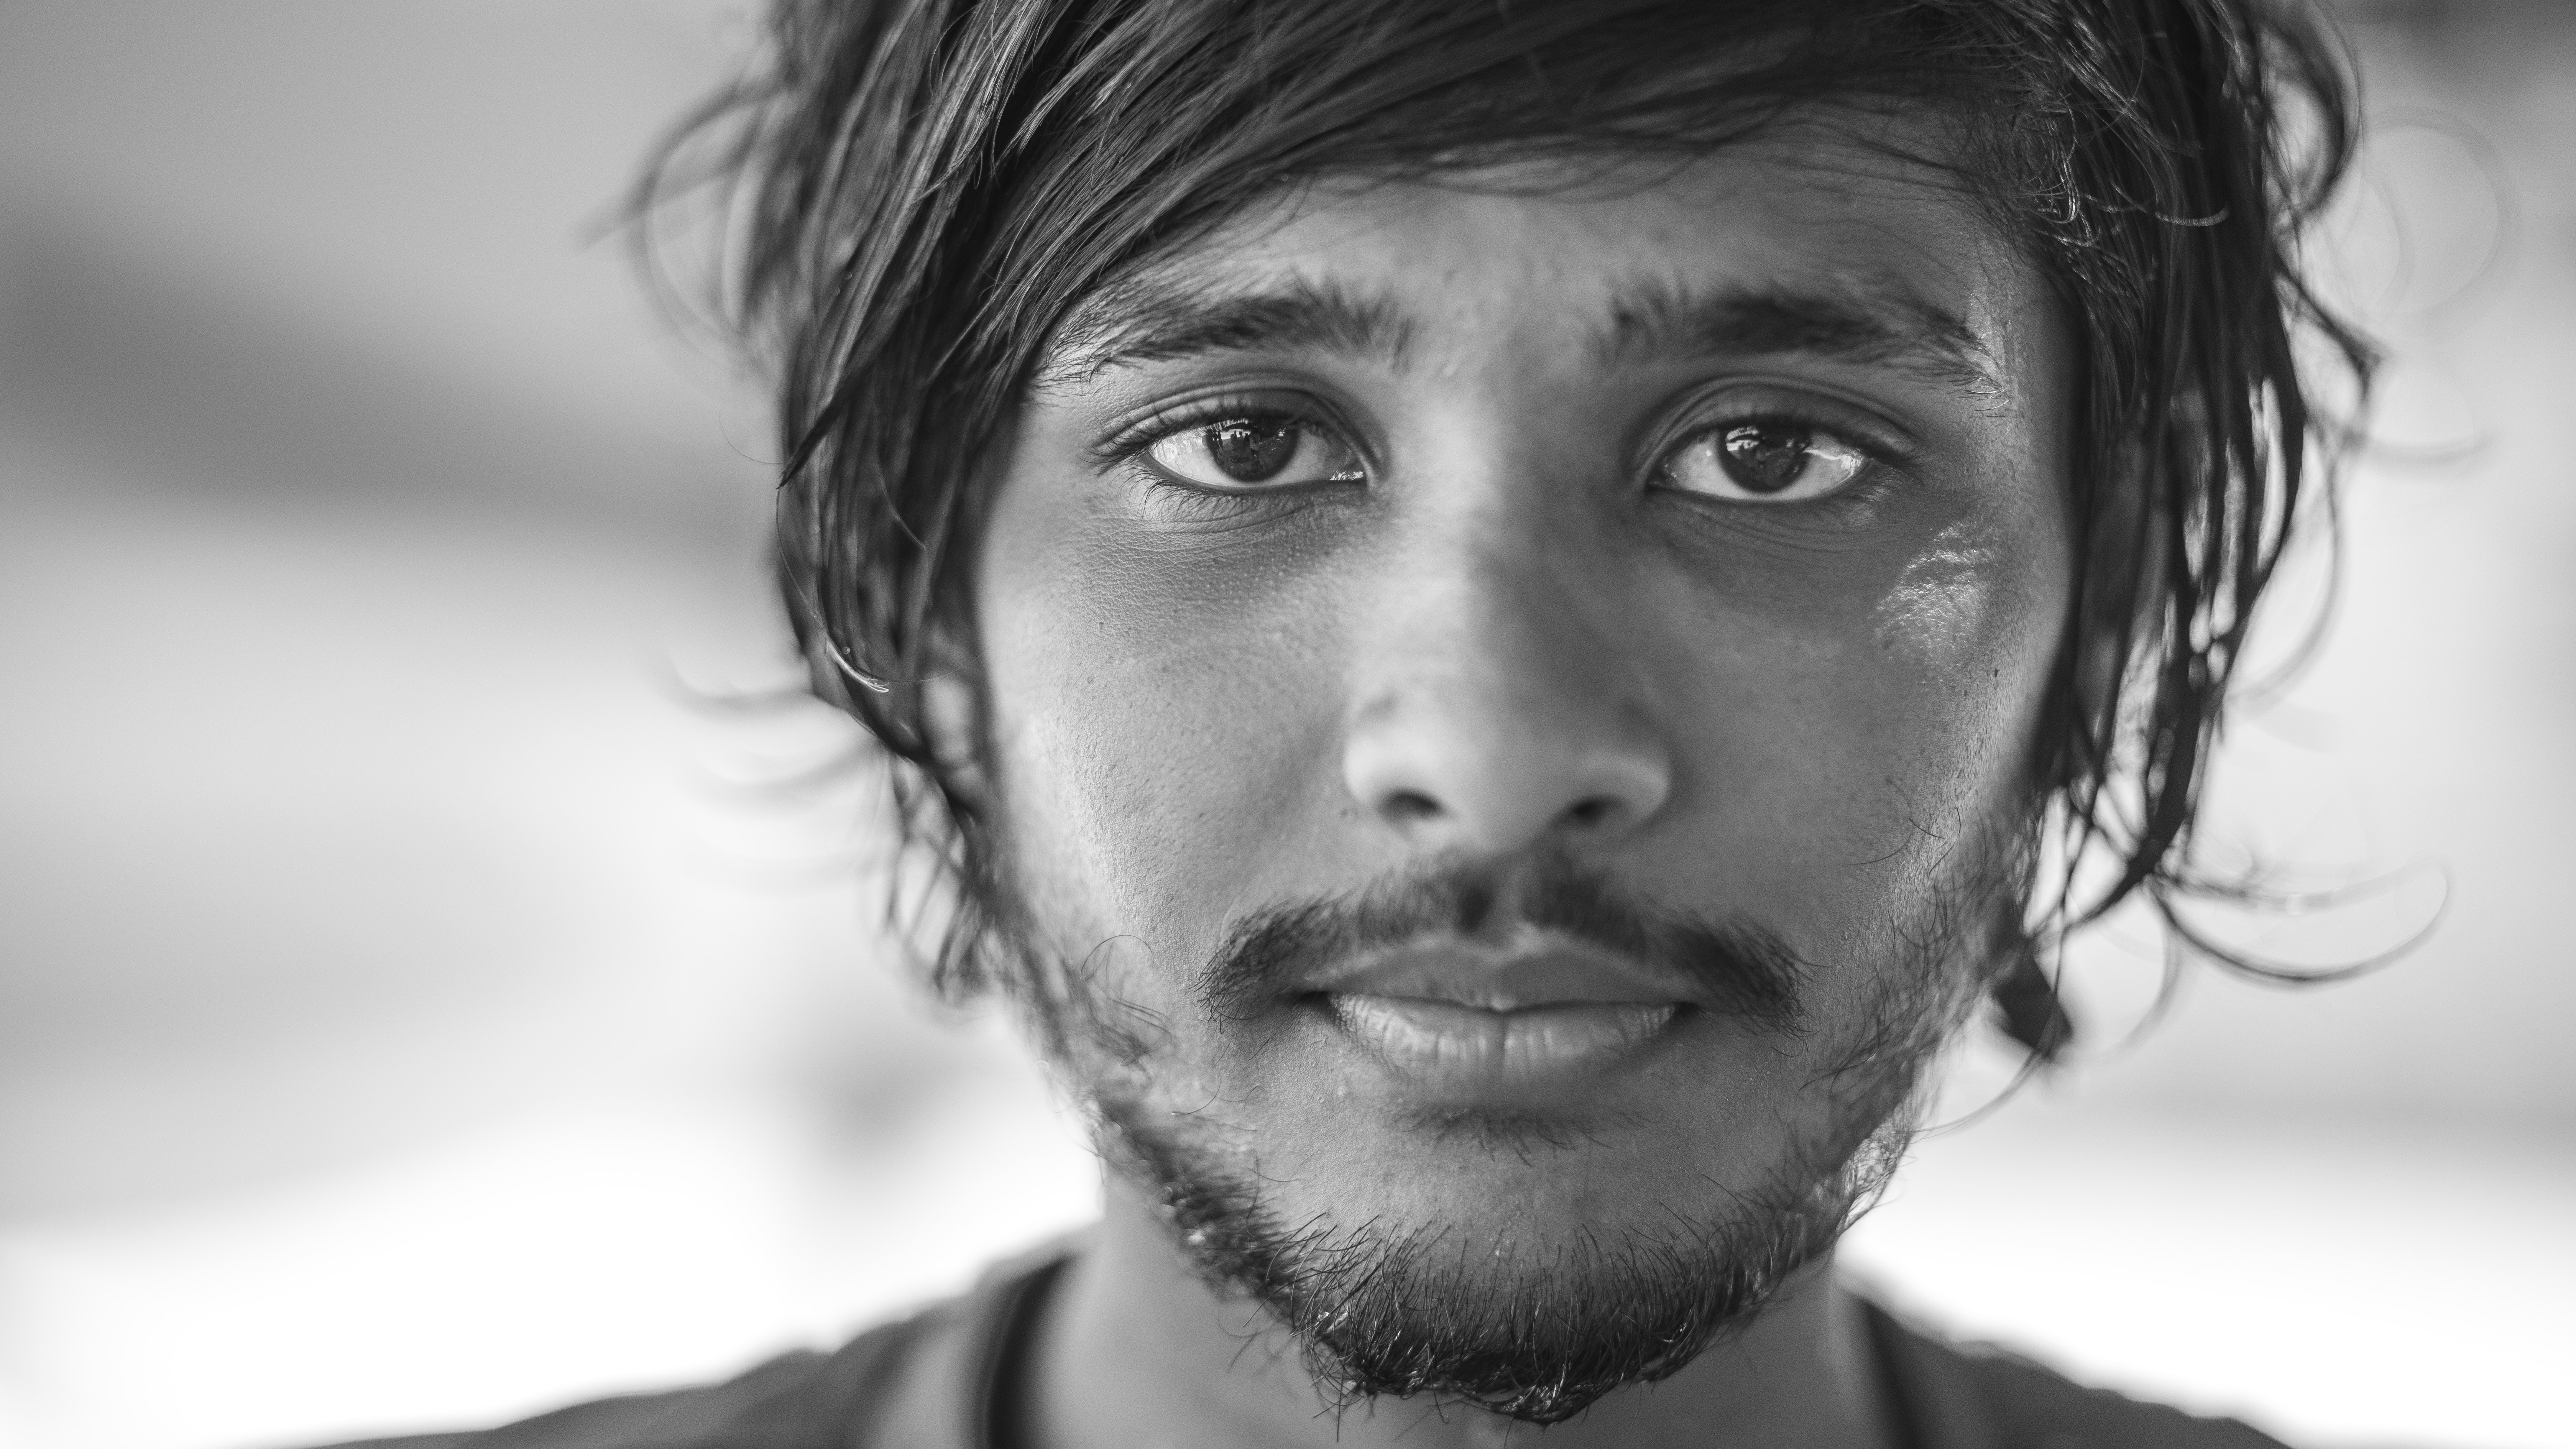 Black and white close up shot of man with facial hair in Gulhi